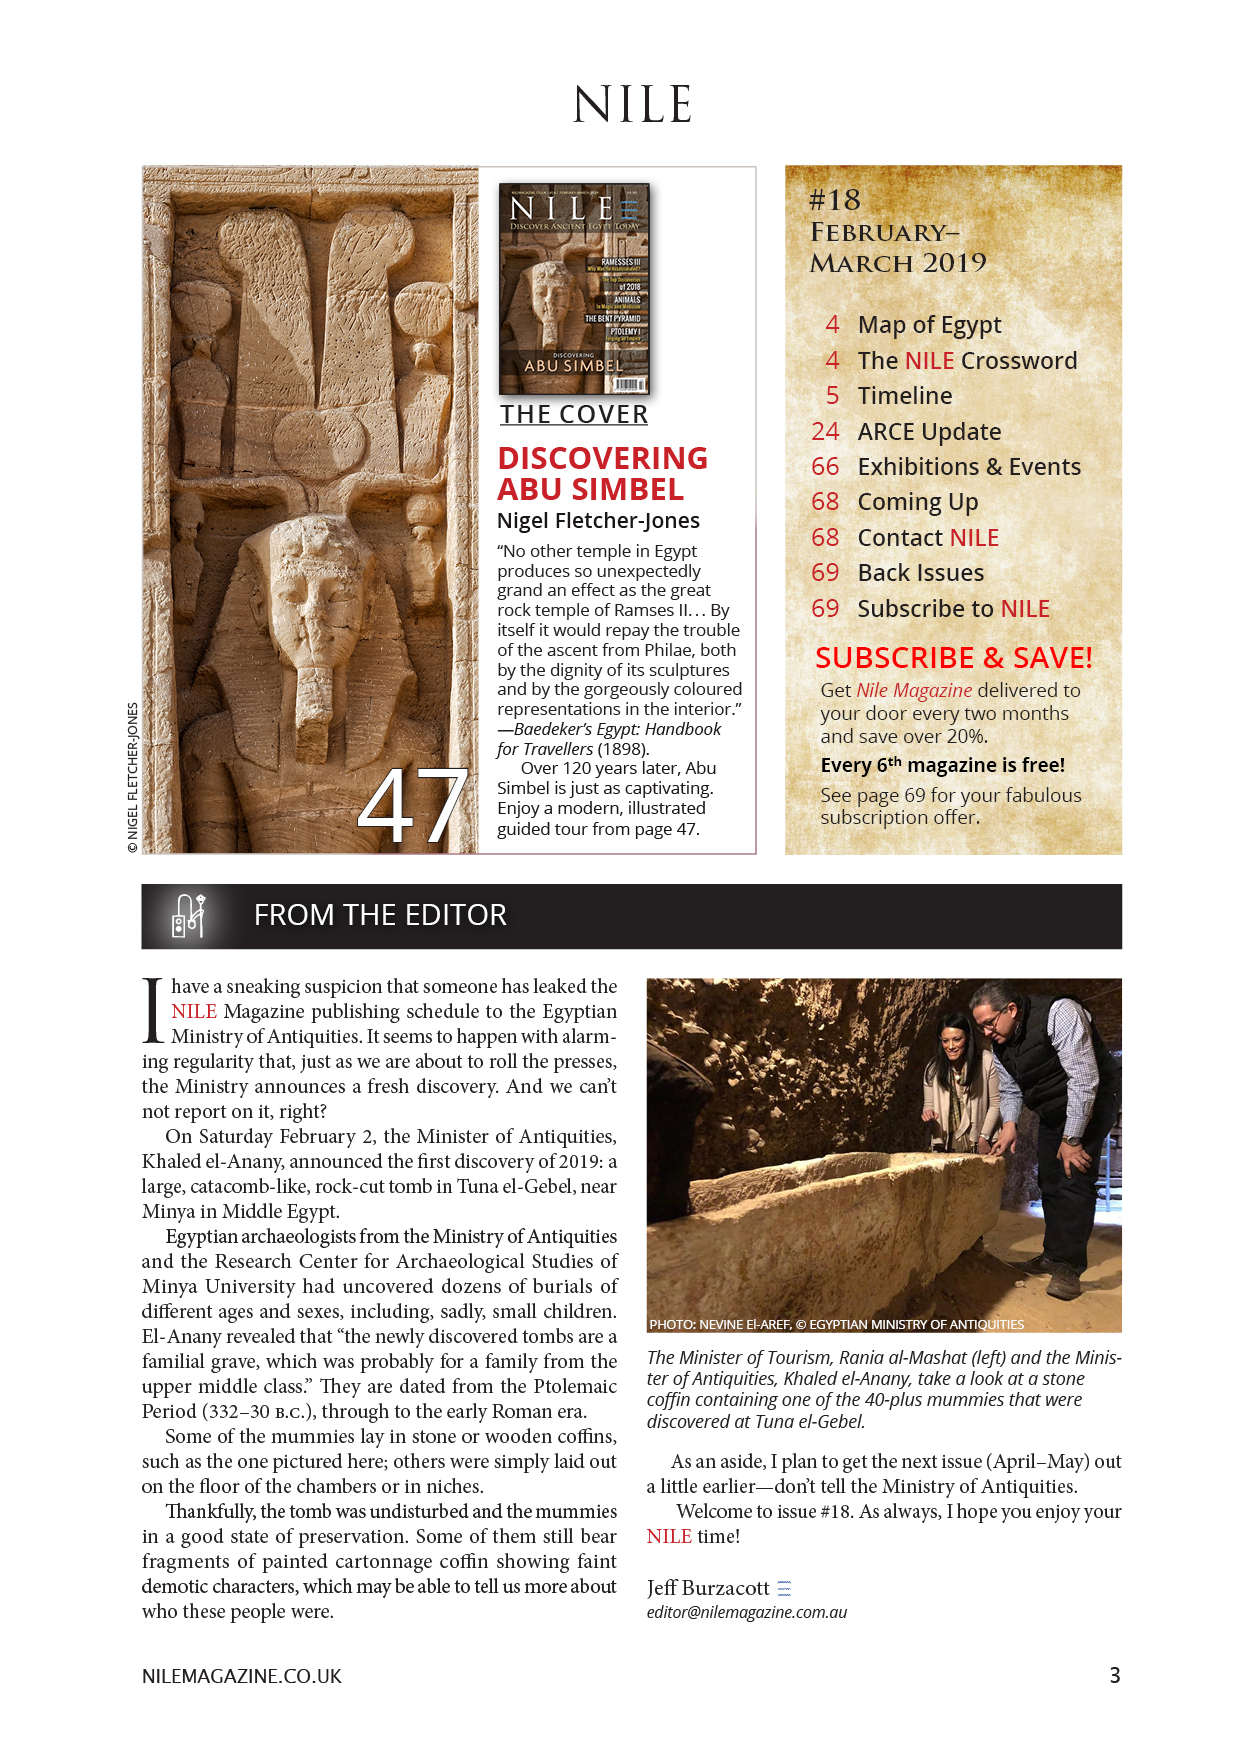 Nile 18, Contents 2 1A.jpg